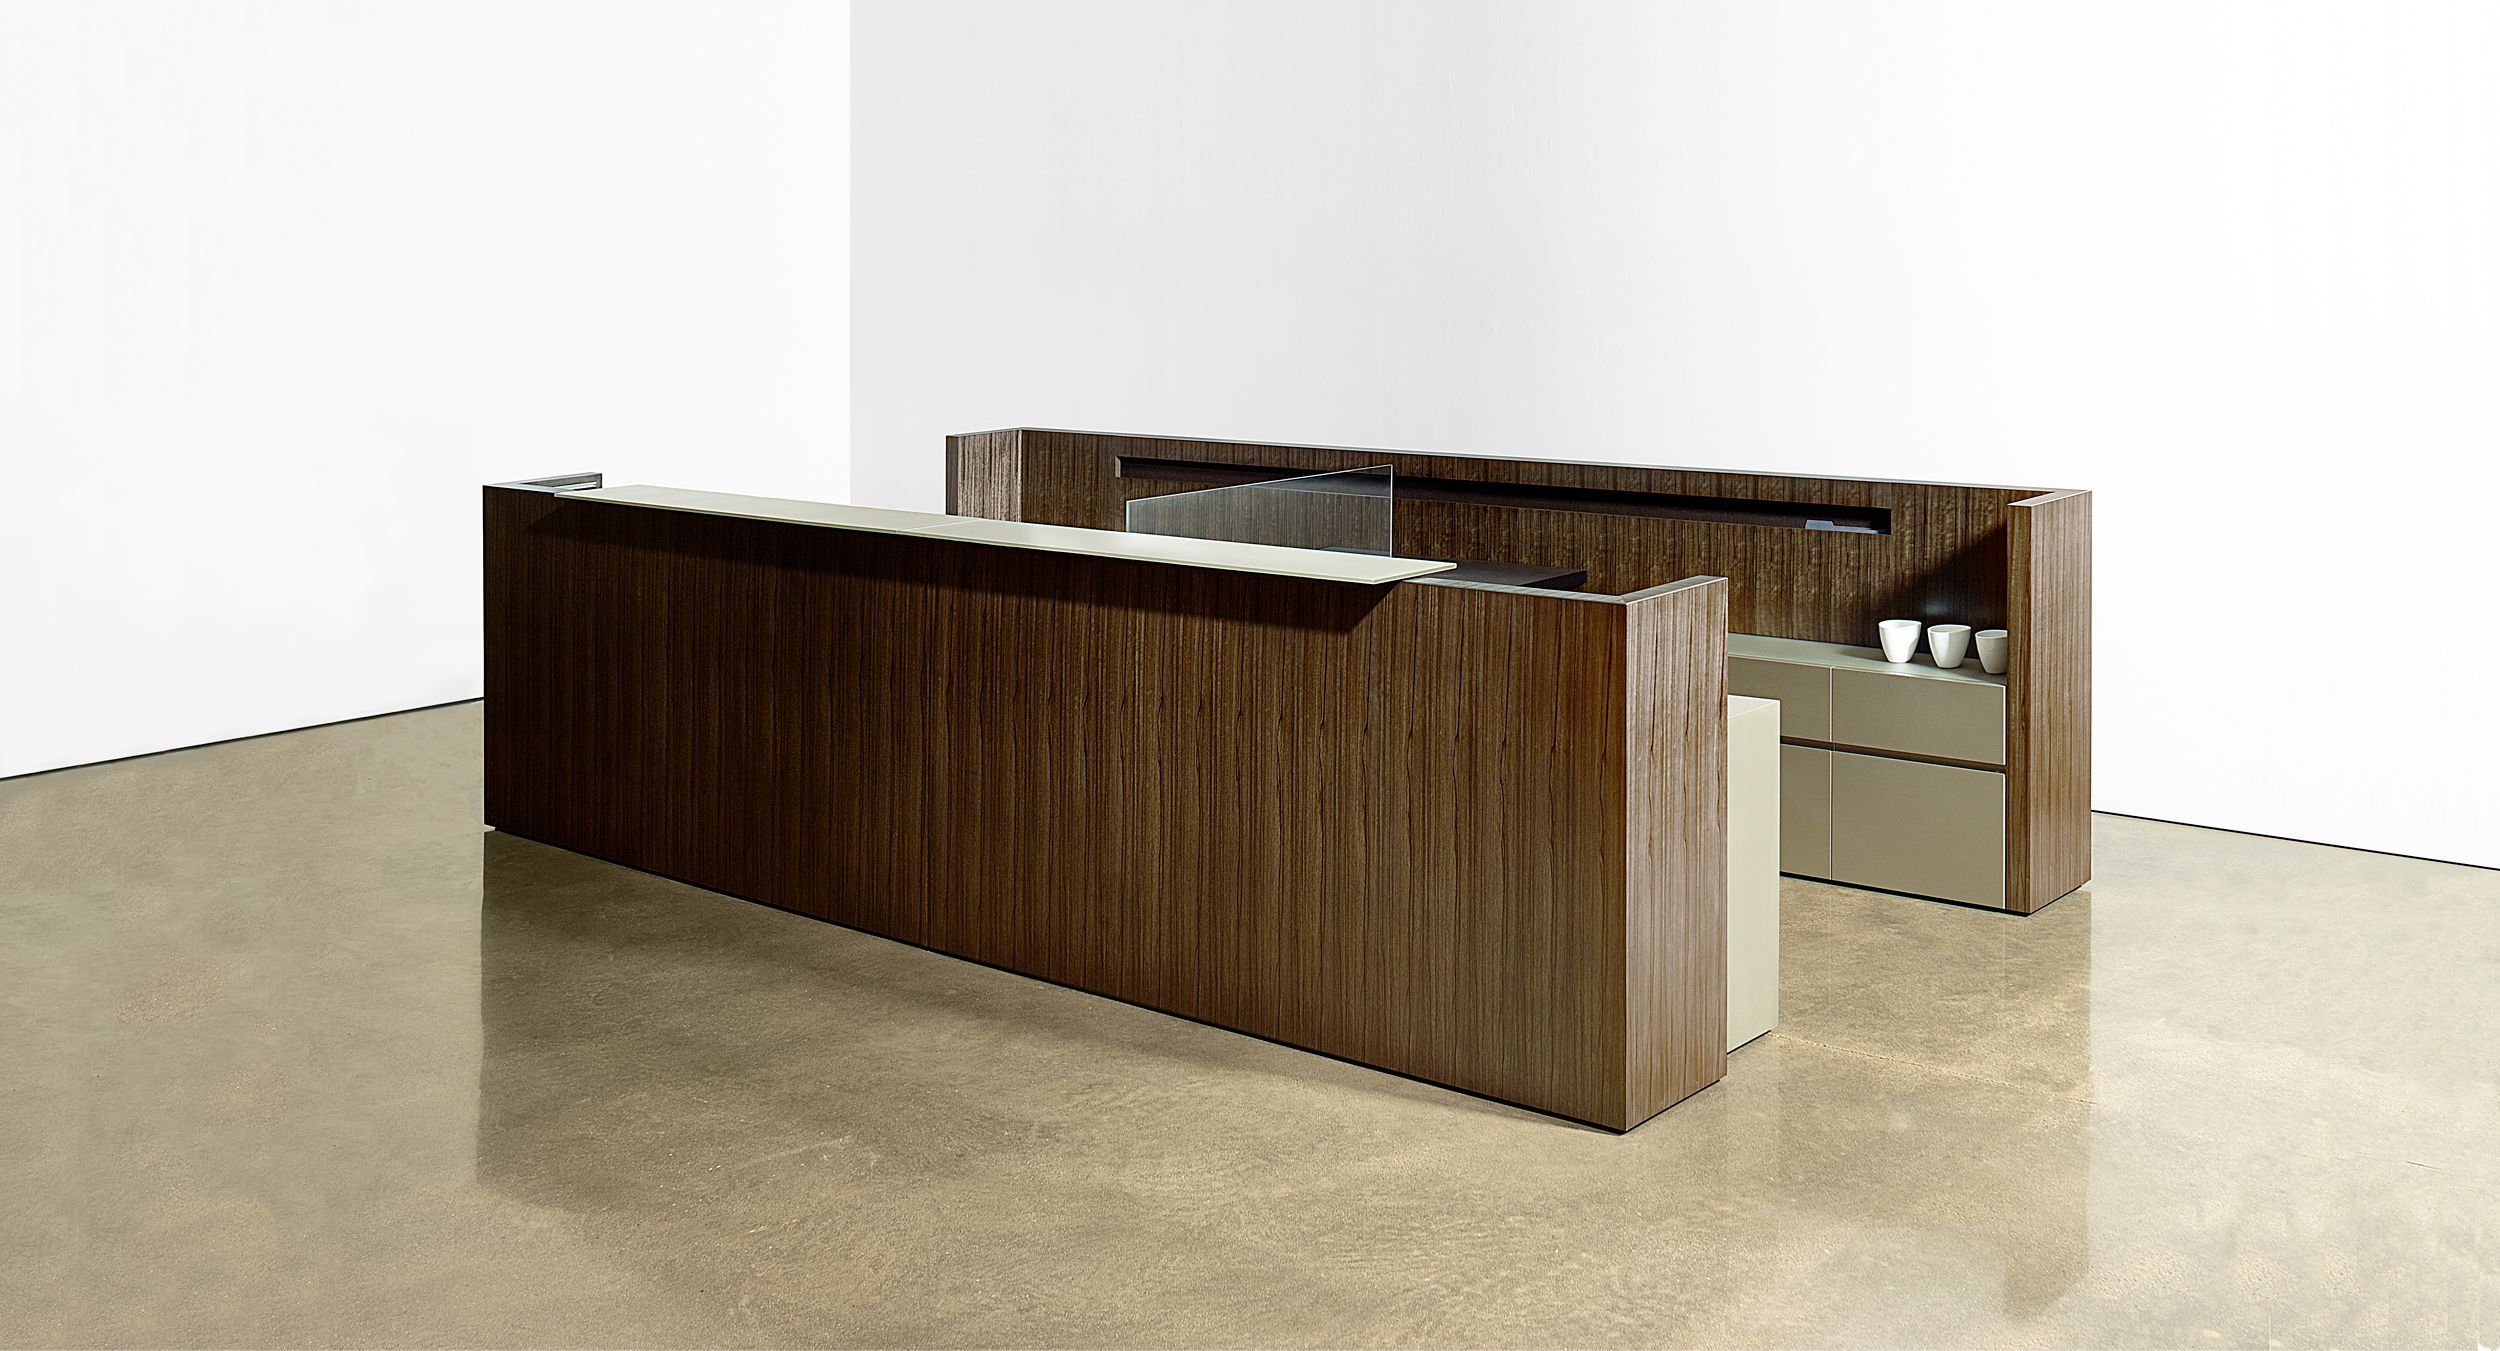 FOUNDRY integrates technology, thoughtful work tools, and complementary materials into the most well-crafted, beautiful millwork system imaginable.